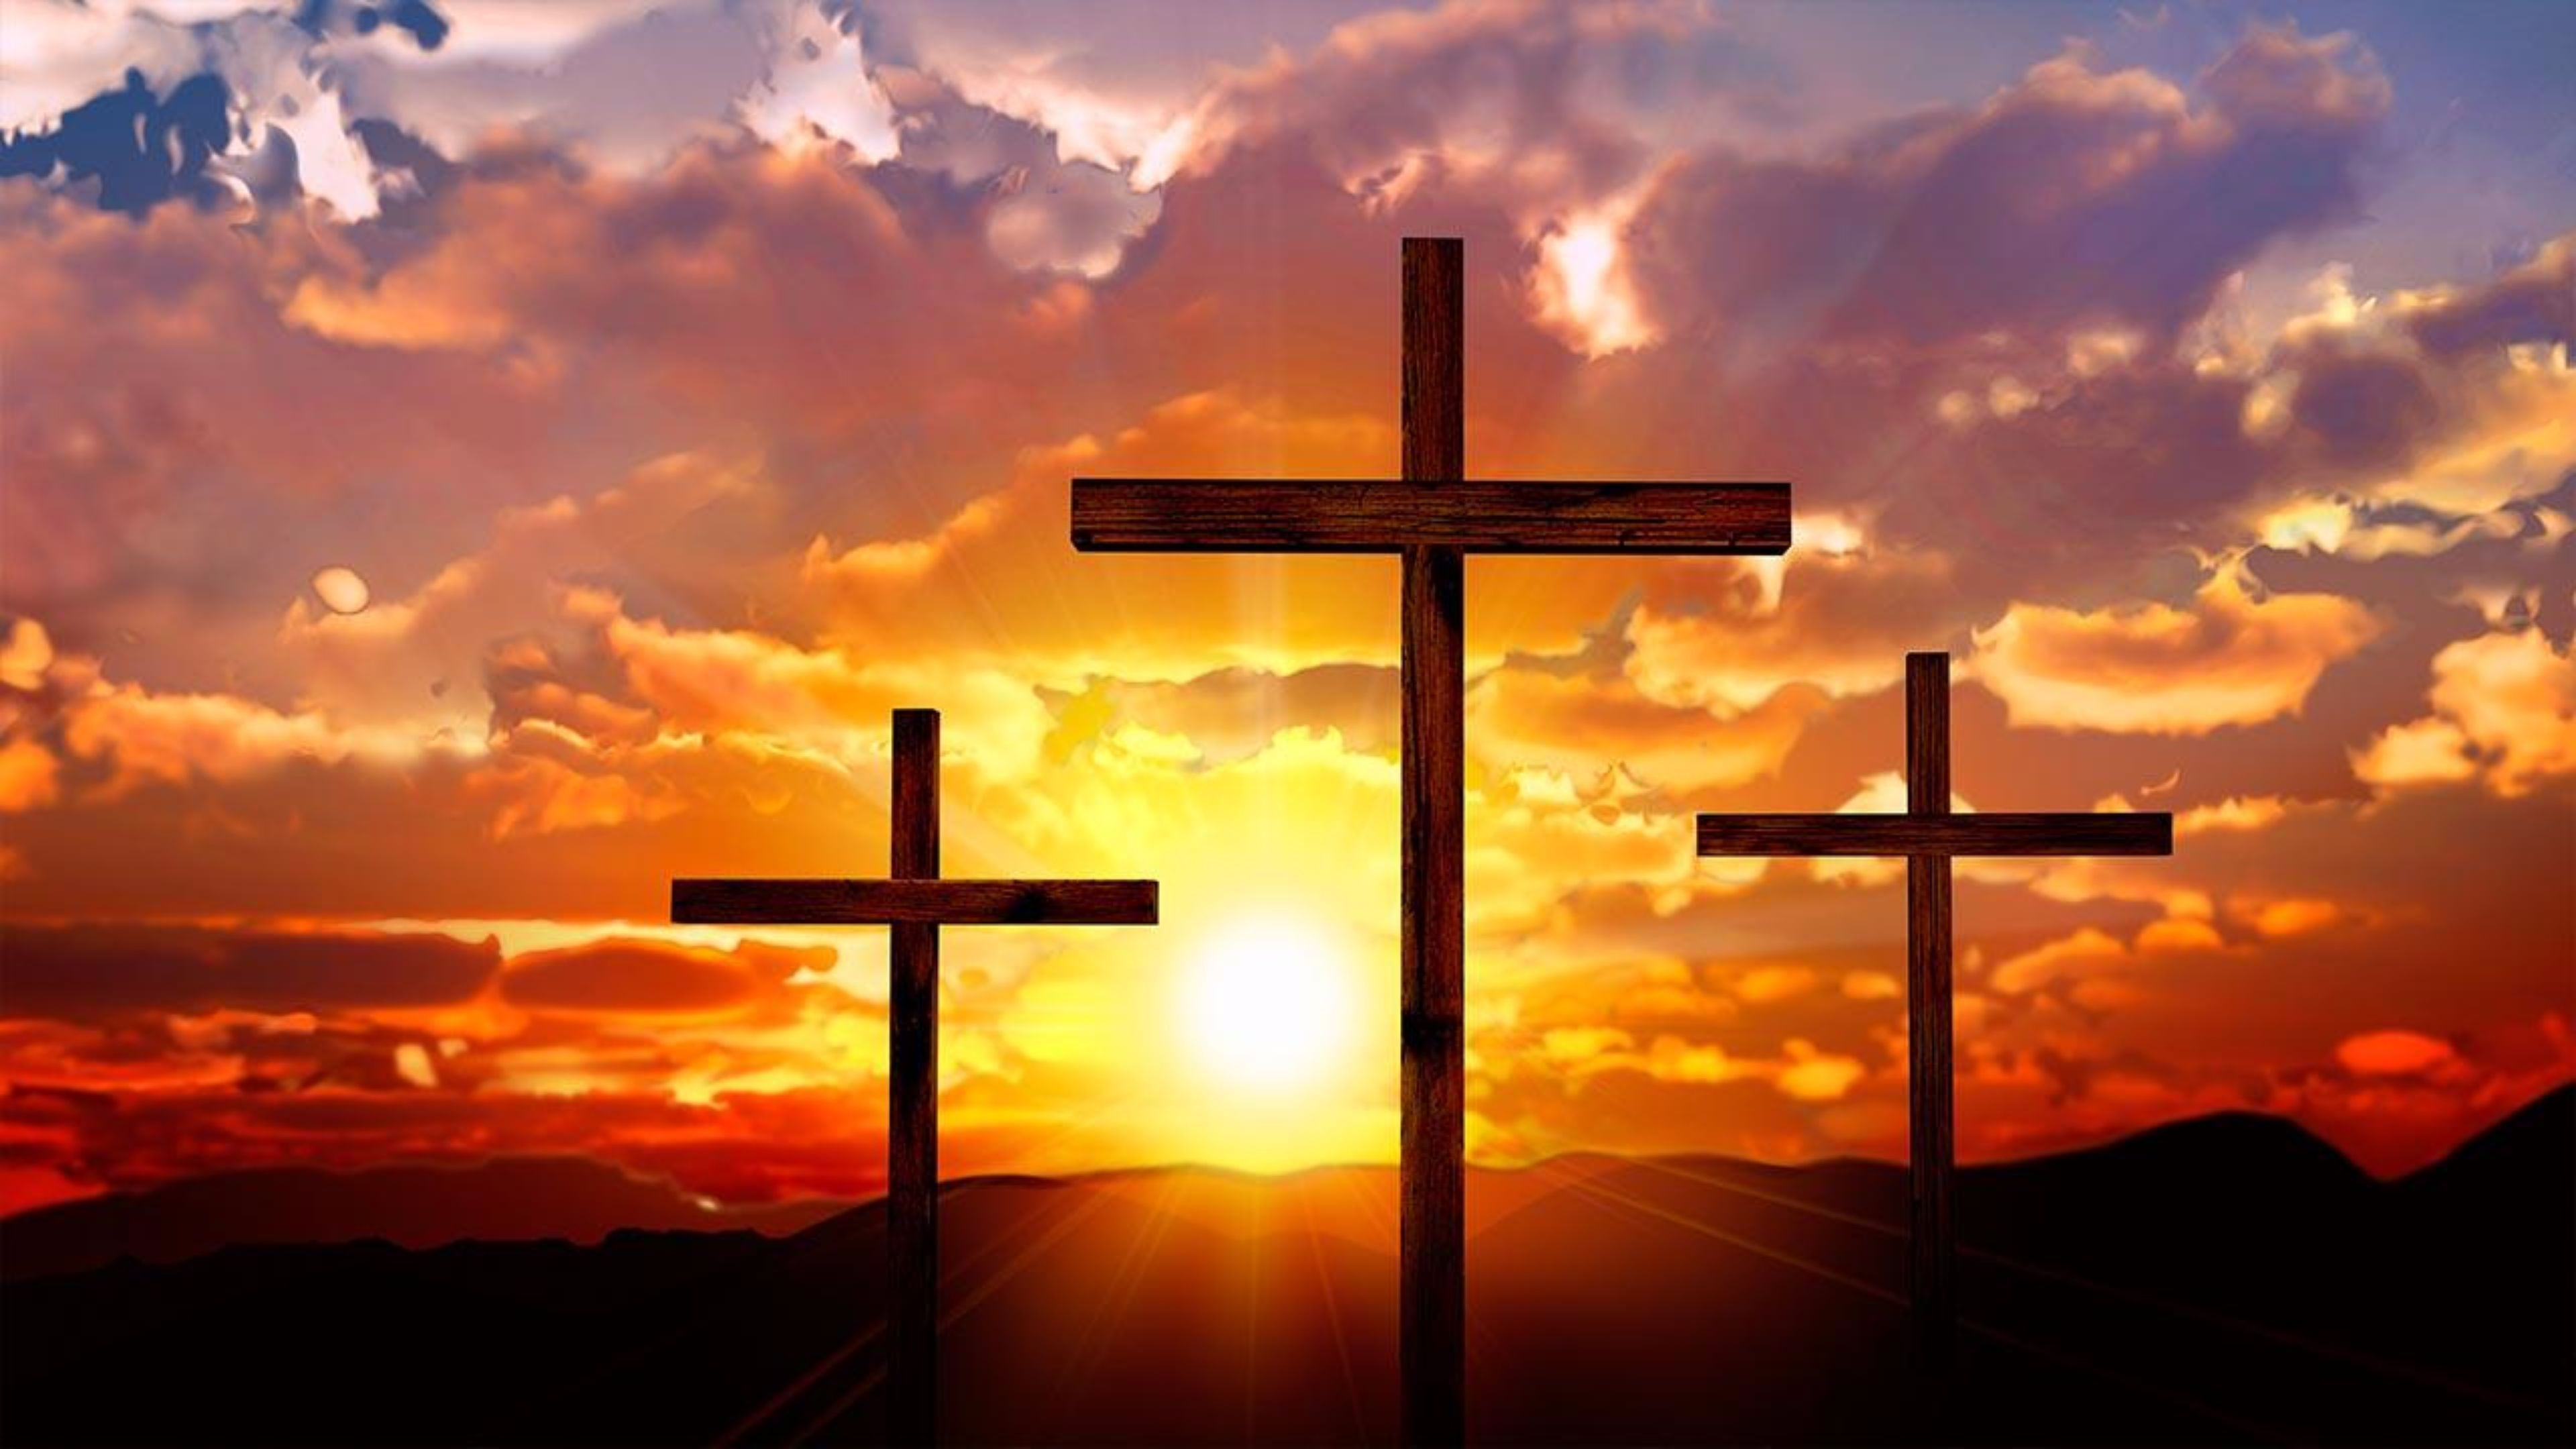 Jesus Christ Wallpapers And Quotes Http Free4kwallpaper Com Wp Content Uploads 2016 01